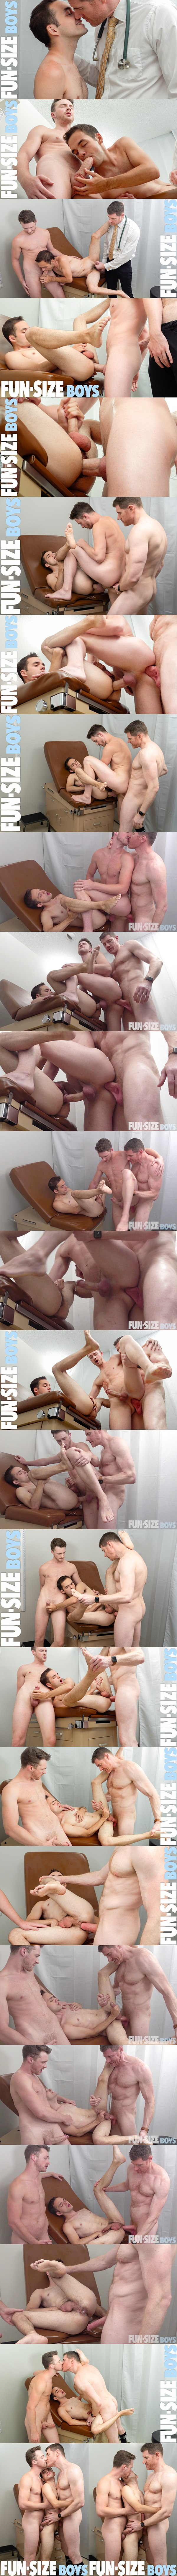 Horse hung daddy LeGrand Wolf barebacks and creampies twinks Marcus Rivers and Cole Blue in an older younger threesome in Little Marcus and Wolf's Kingsize Nurse at Funsizeboys 01